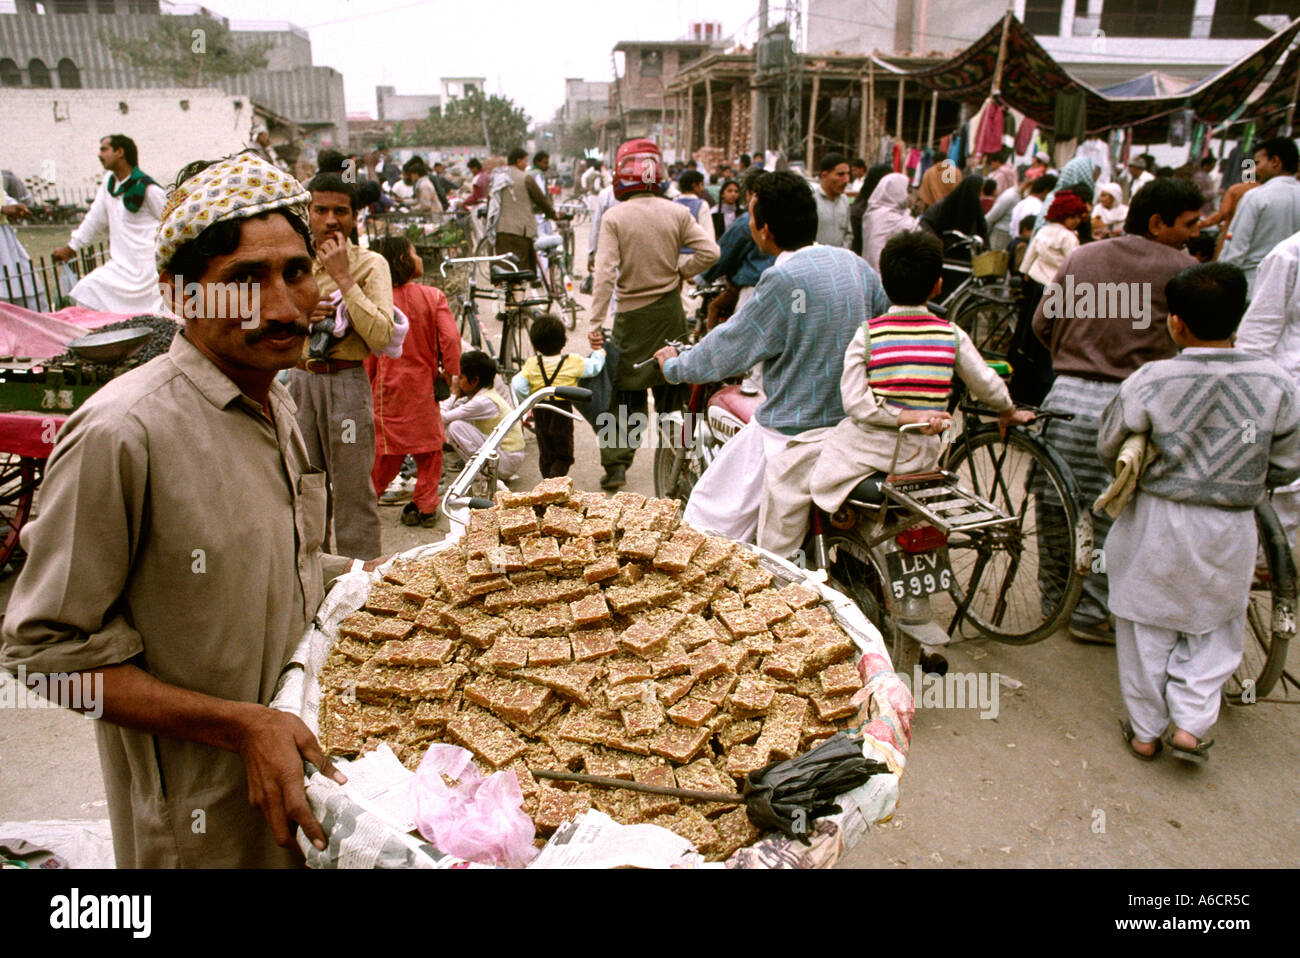 One organic chemist one day 10 20 15 for Bano bazar anarkali lahore